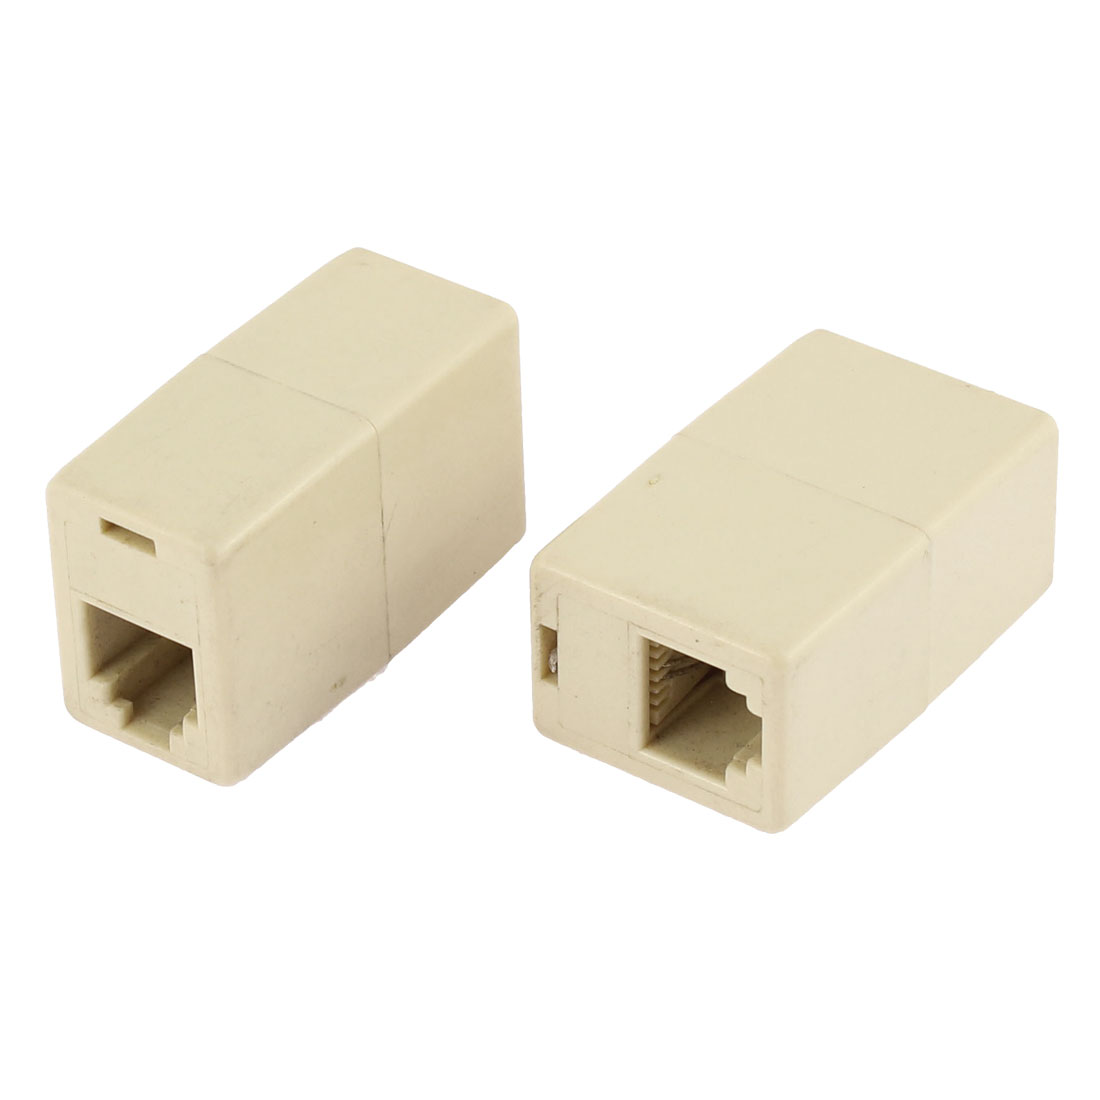 RJ11 6P2C Female to Female Telephone Splitter Connector Adapter 2PCS